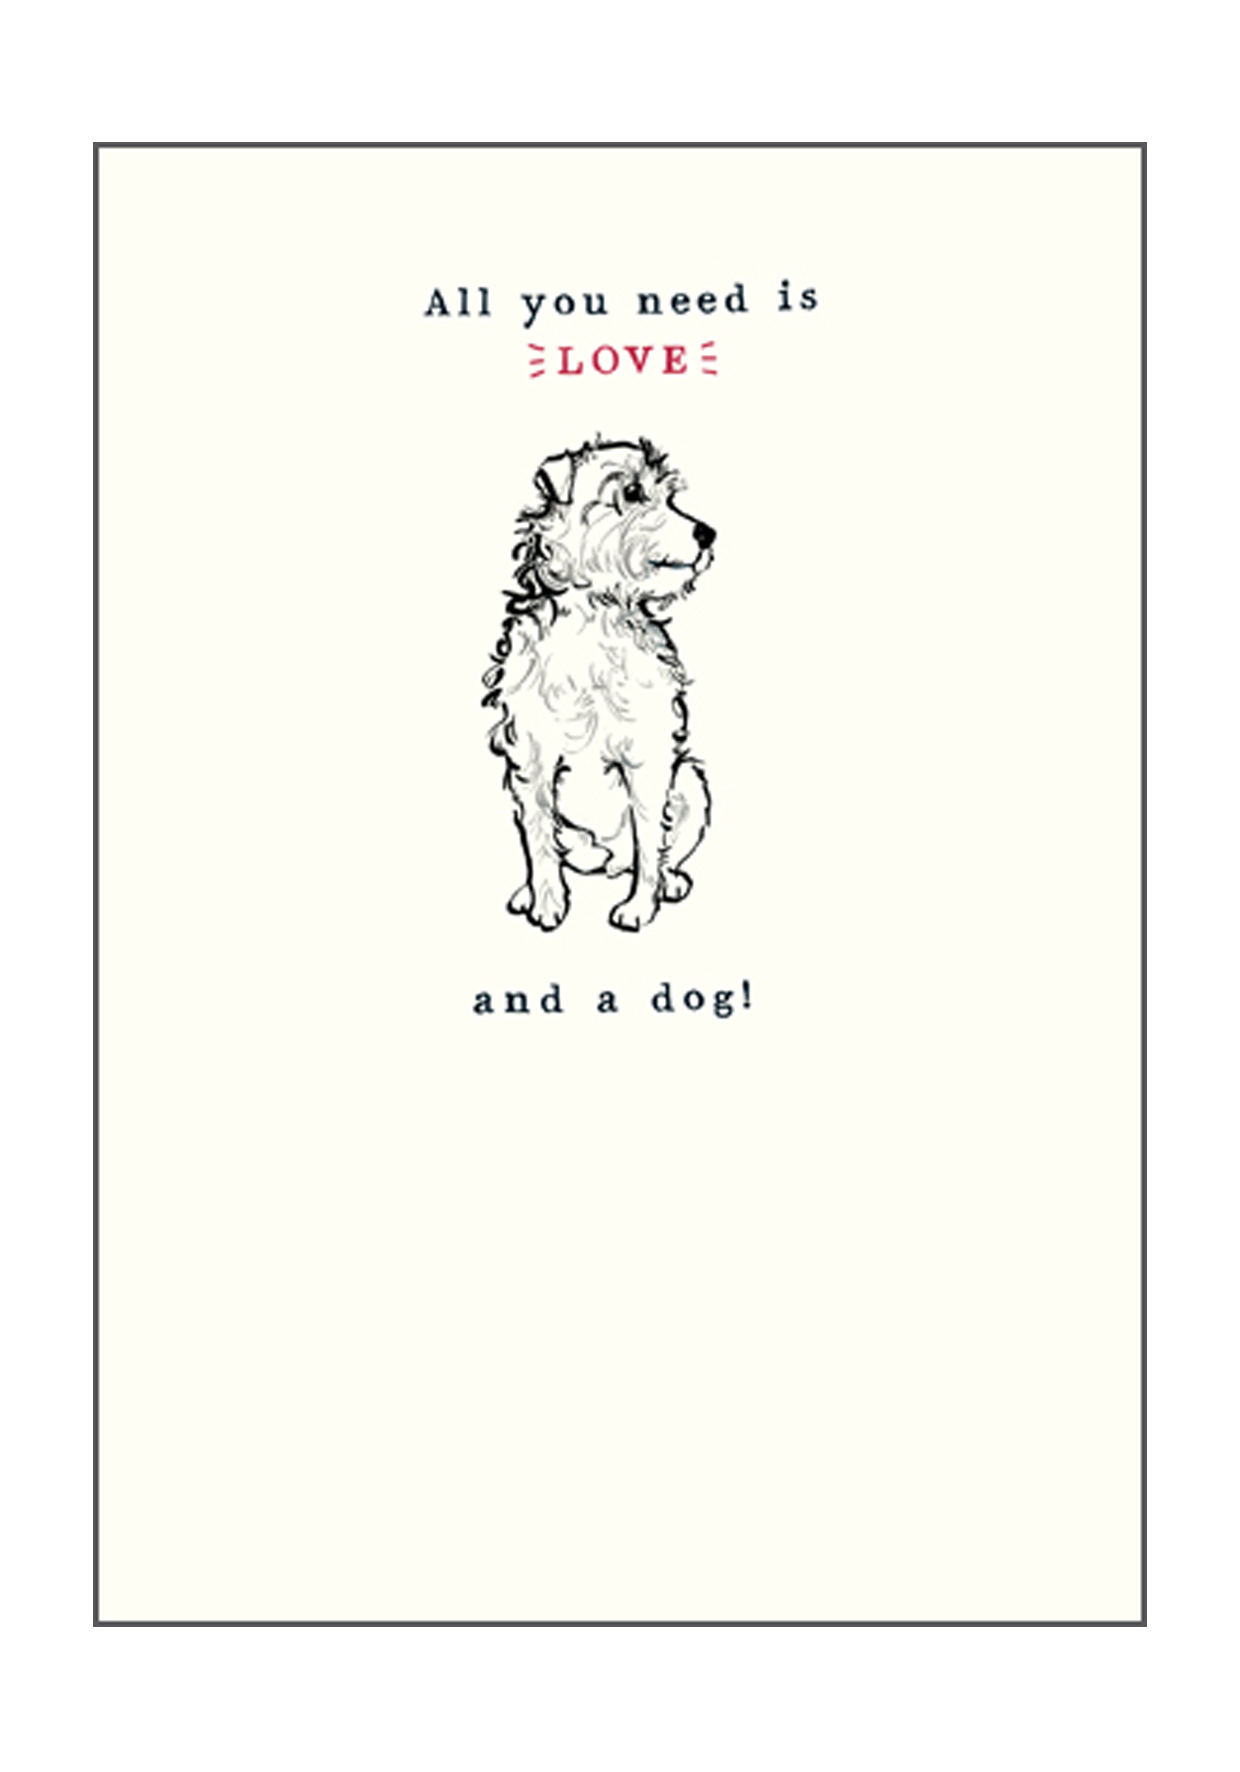 all you need is love dog greeting card dog vips dog friendly greeting cards - Dog Greeting Cards